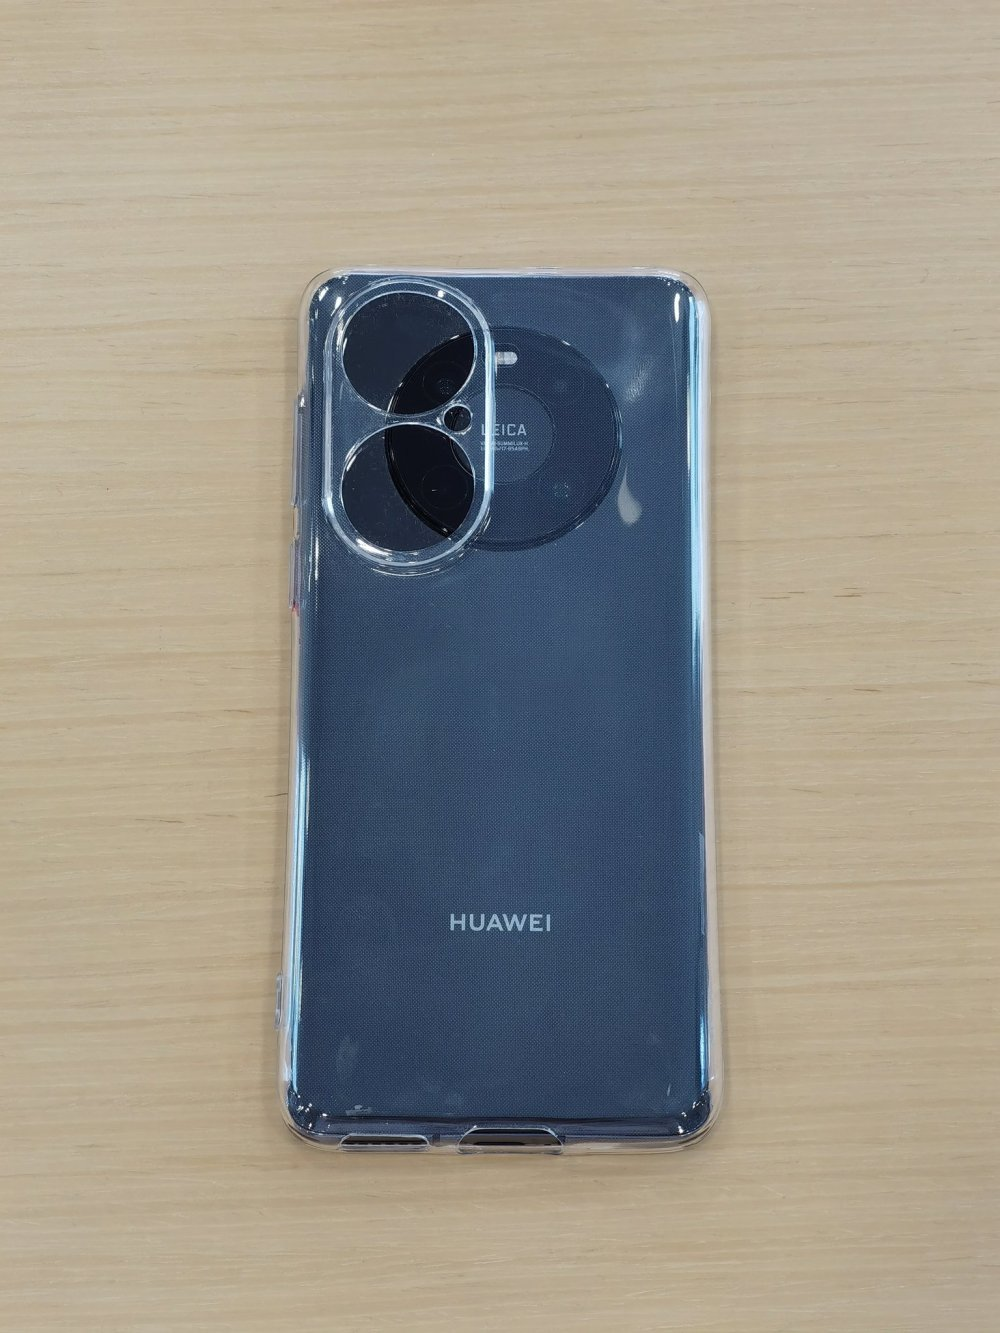 Comparison of Huawei P50 and Huawei P50 Pro case with Huawei P40, Huawei Mate 40 and Huawei P40 Pro